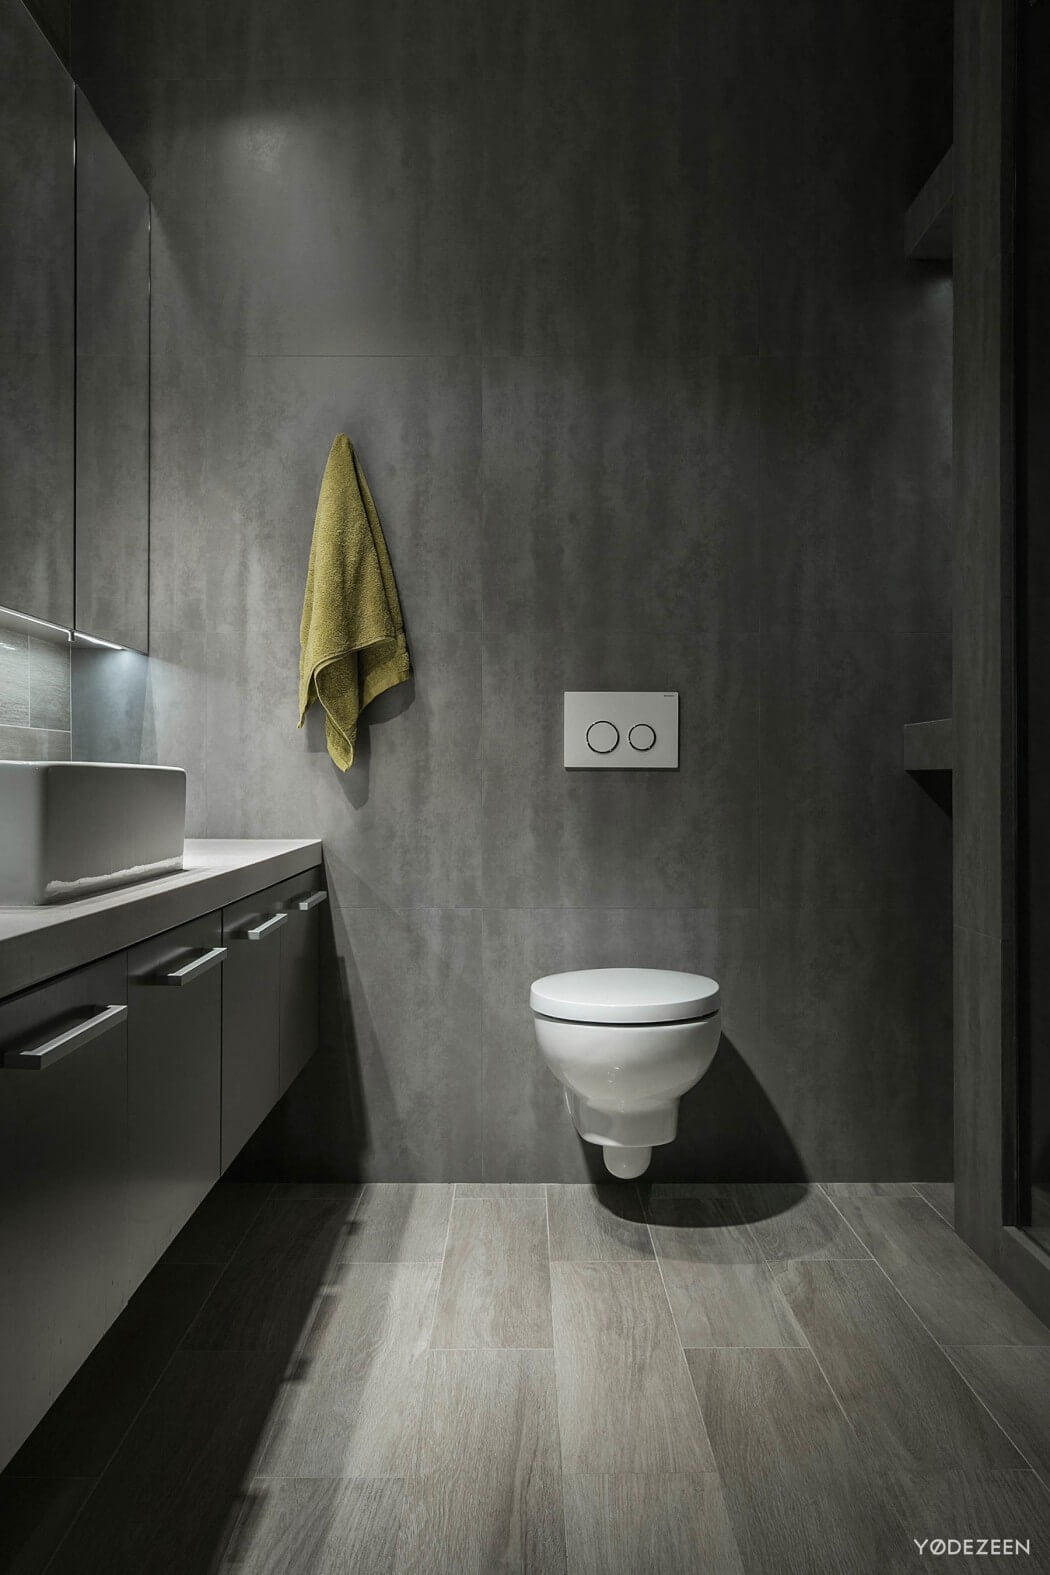 020-apartment-kiev-yodezeen-1050x1575